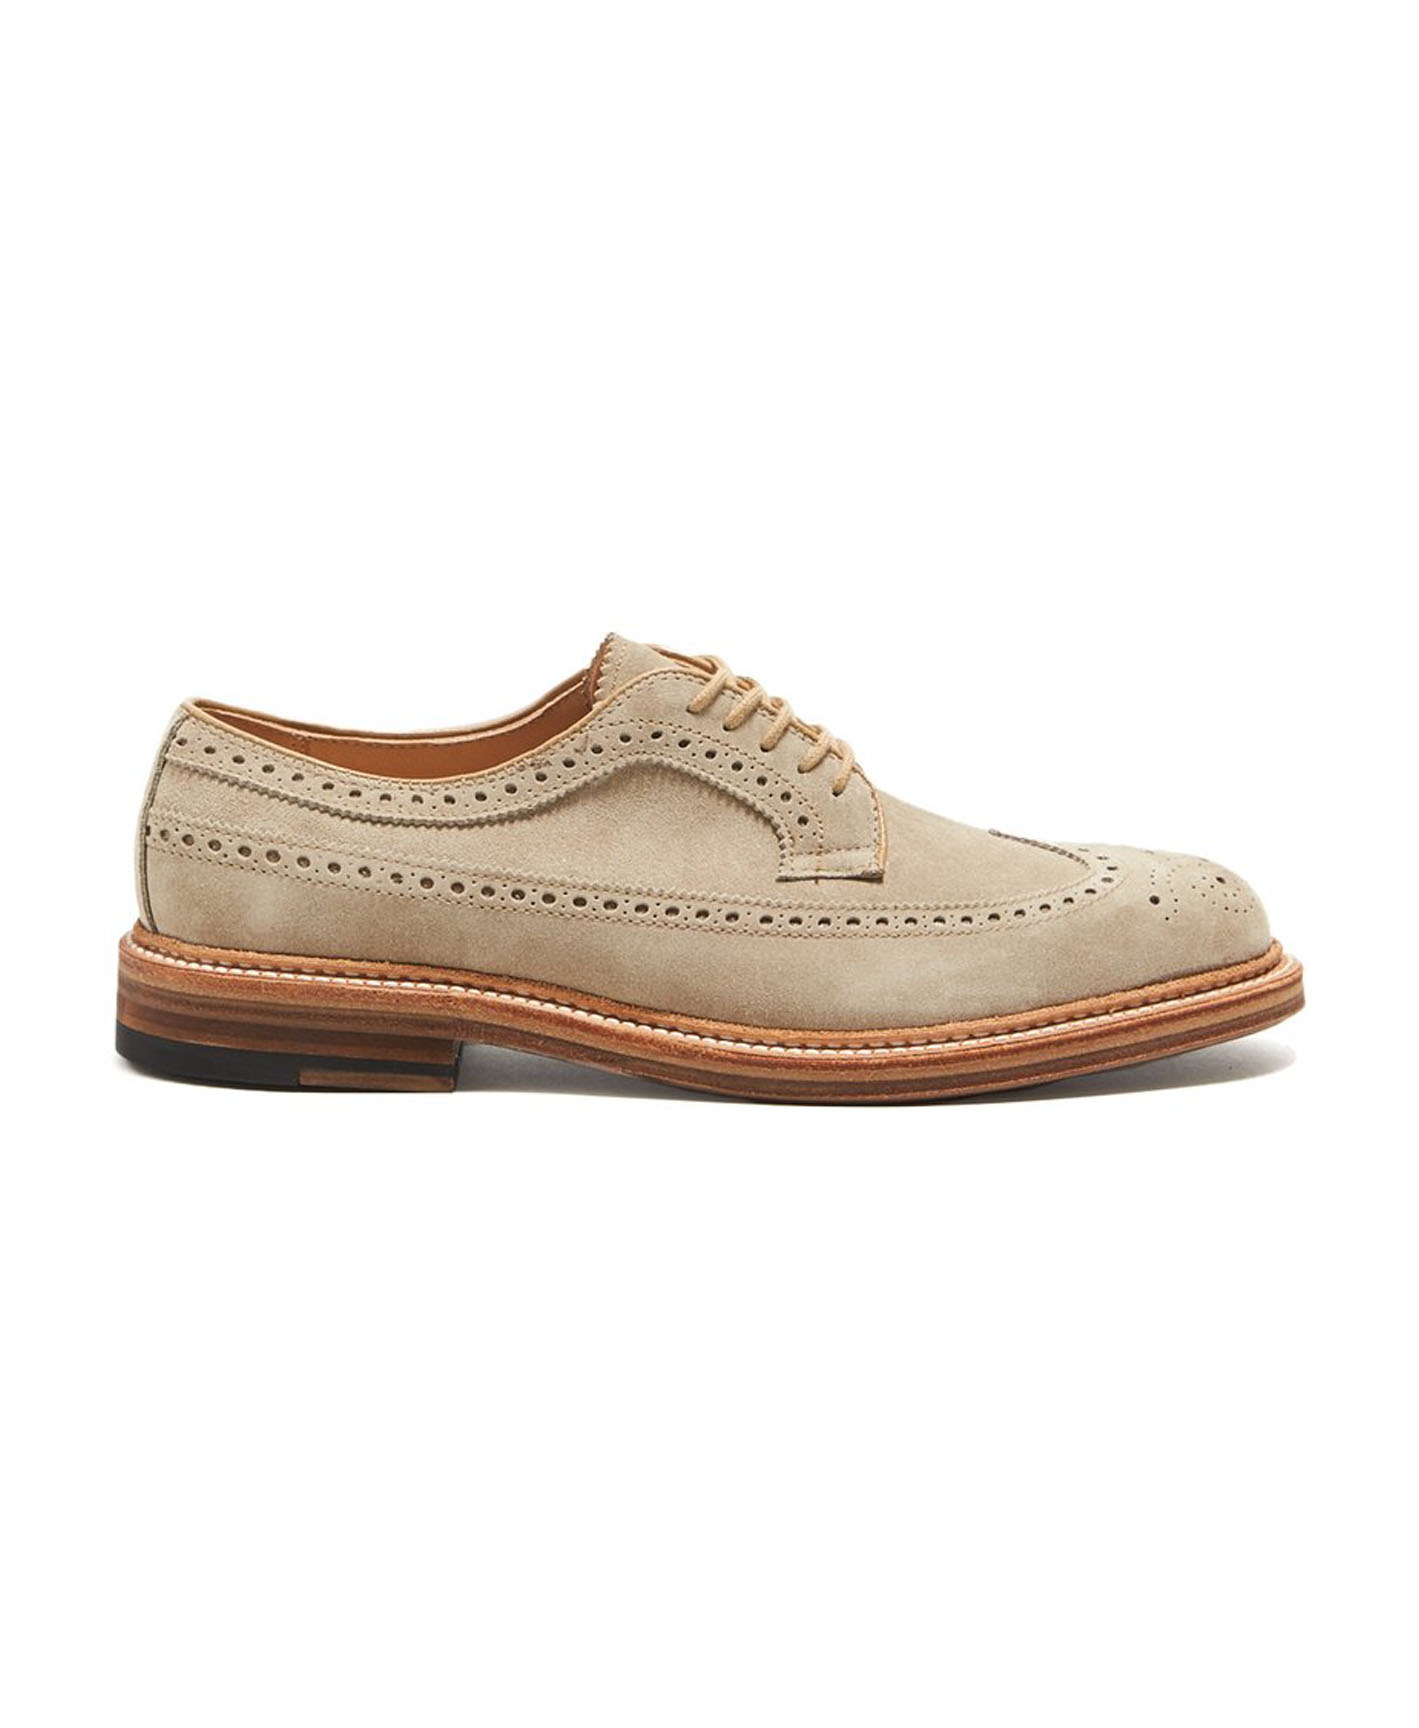 Todd Snyder dress shoes